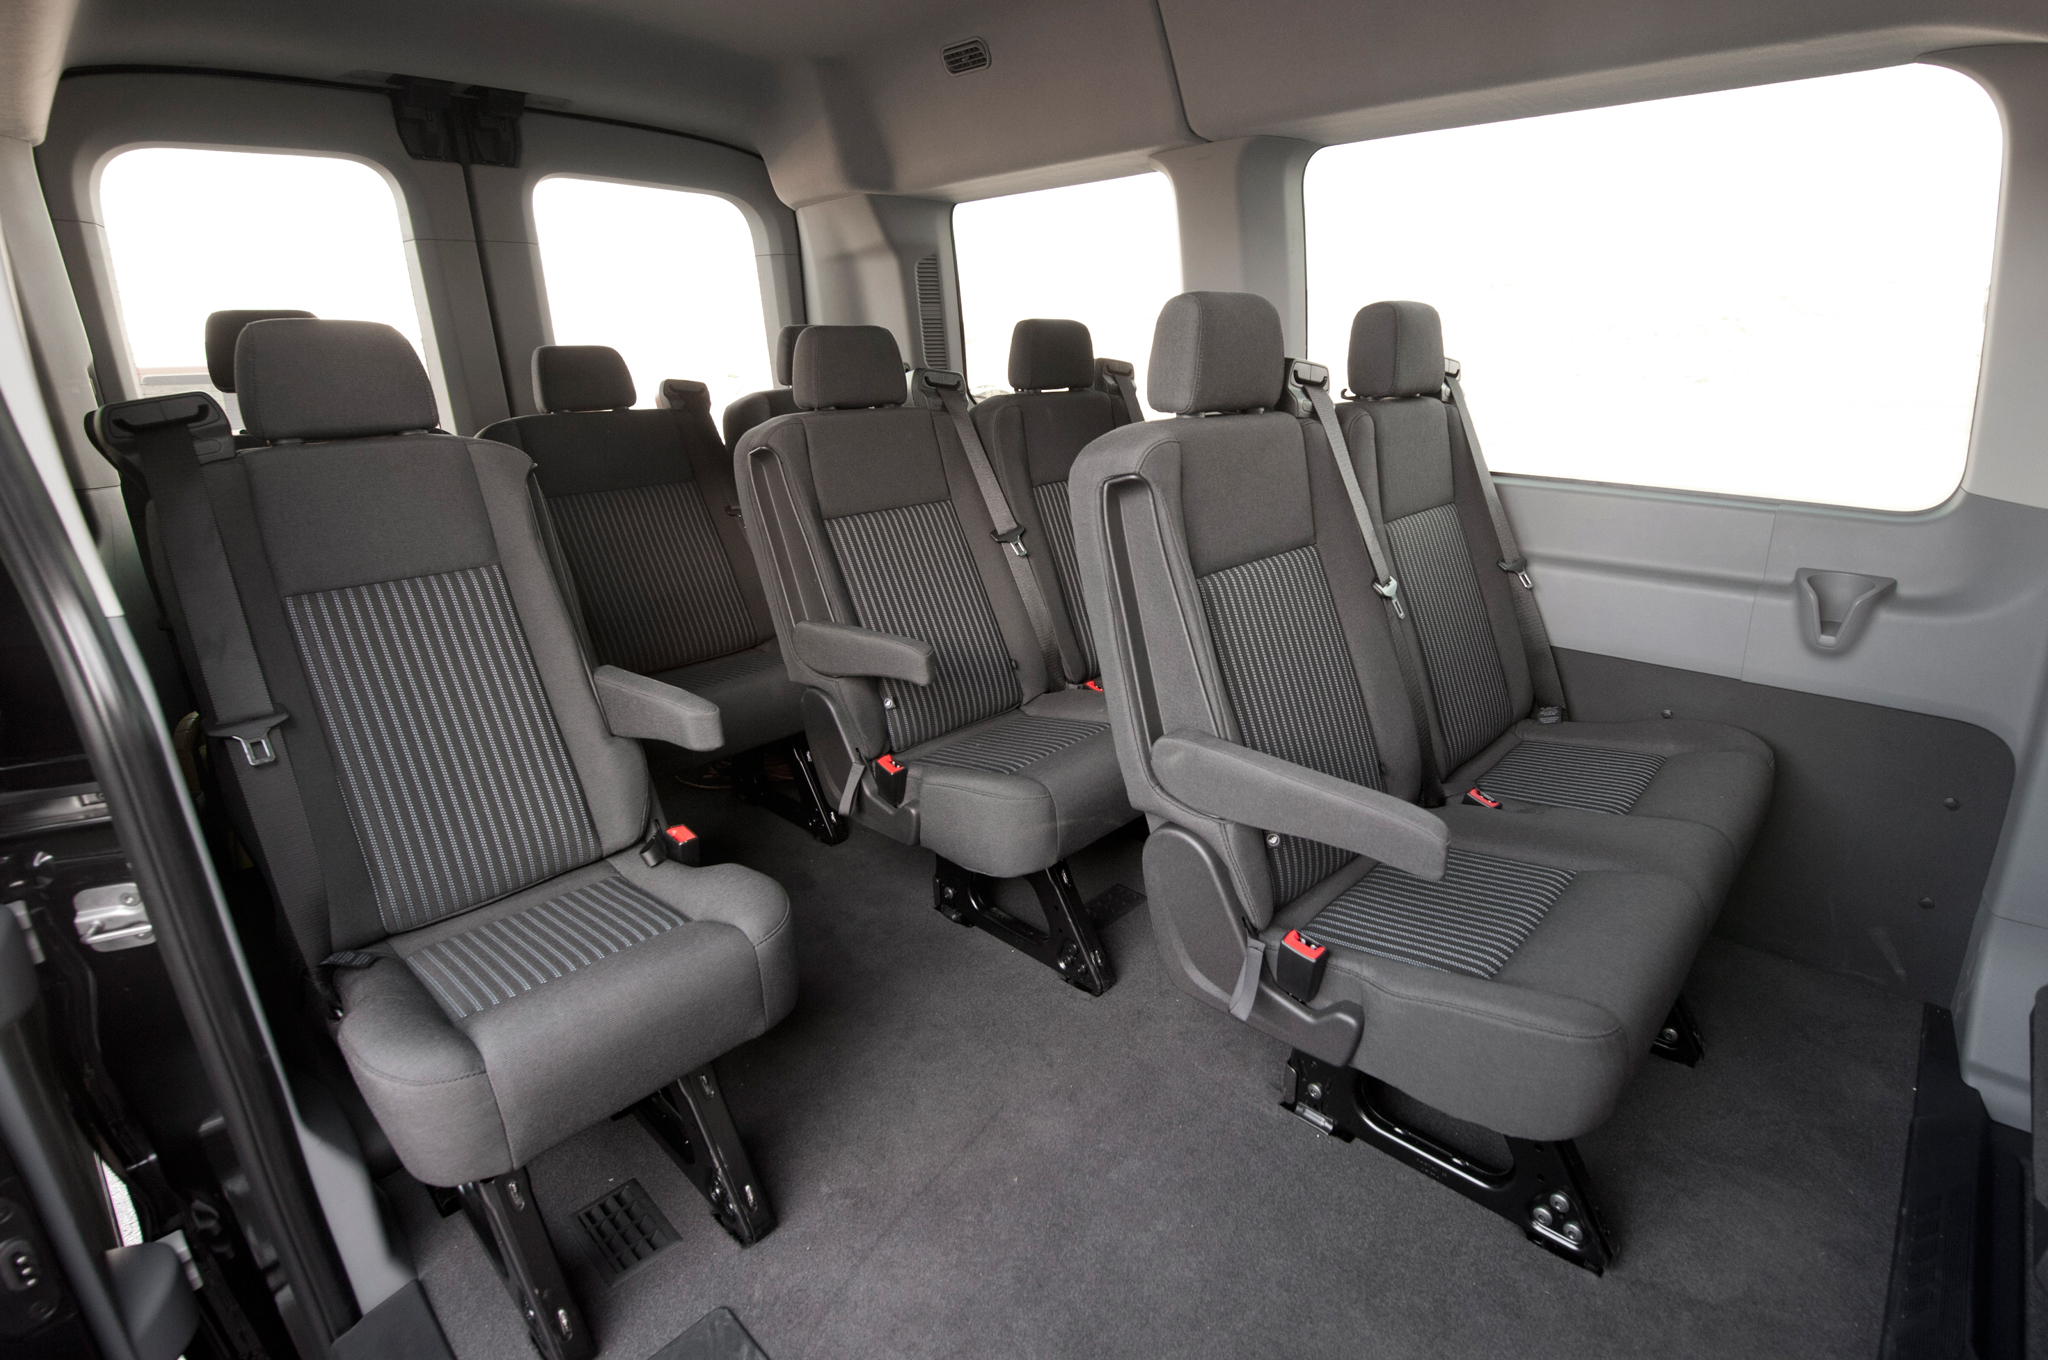 2015 Ford Transit 150 Seats Interior (View 6 of 13)